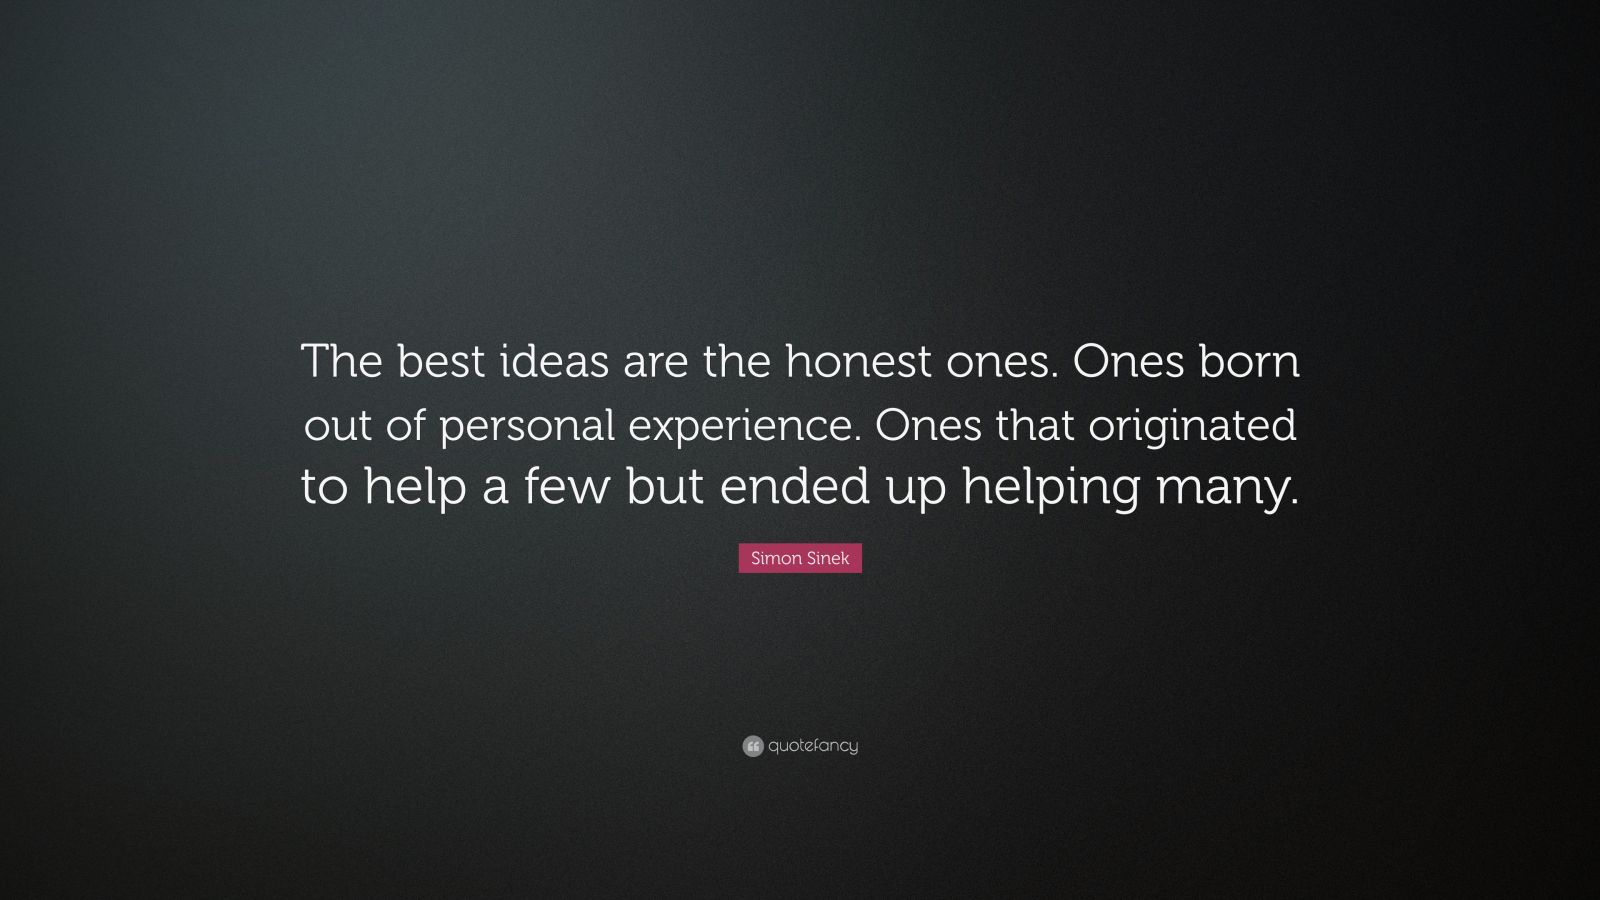 """Simon Sinek Quote: """"The best ideas are the honest ones. Ones born out of personal experience. Ones that originated to help a few but ended up helping many."""""""